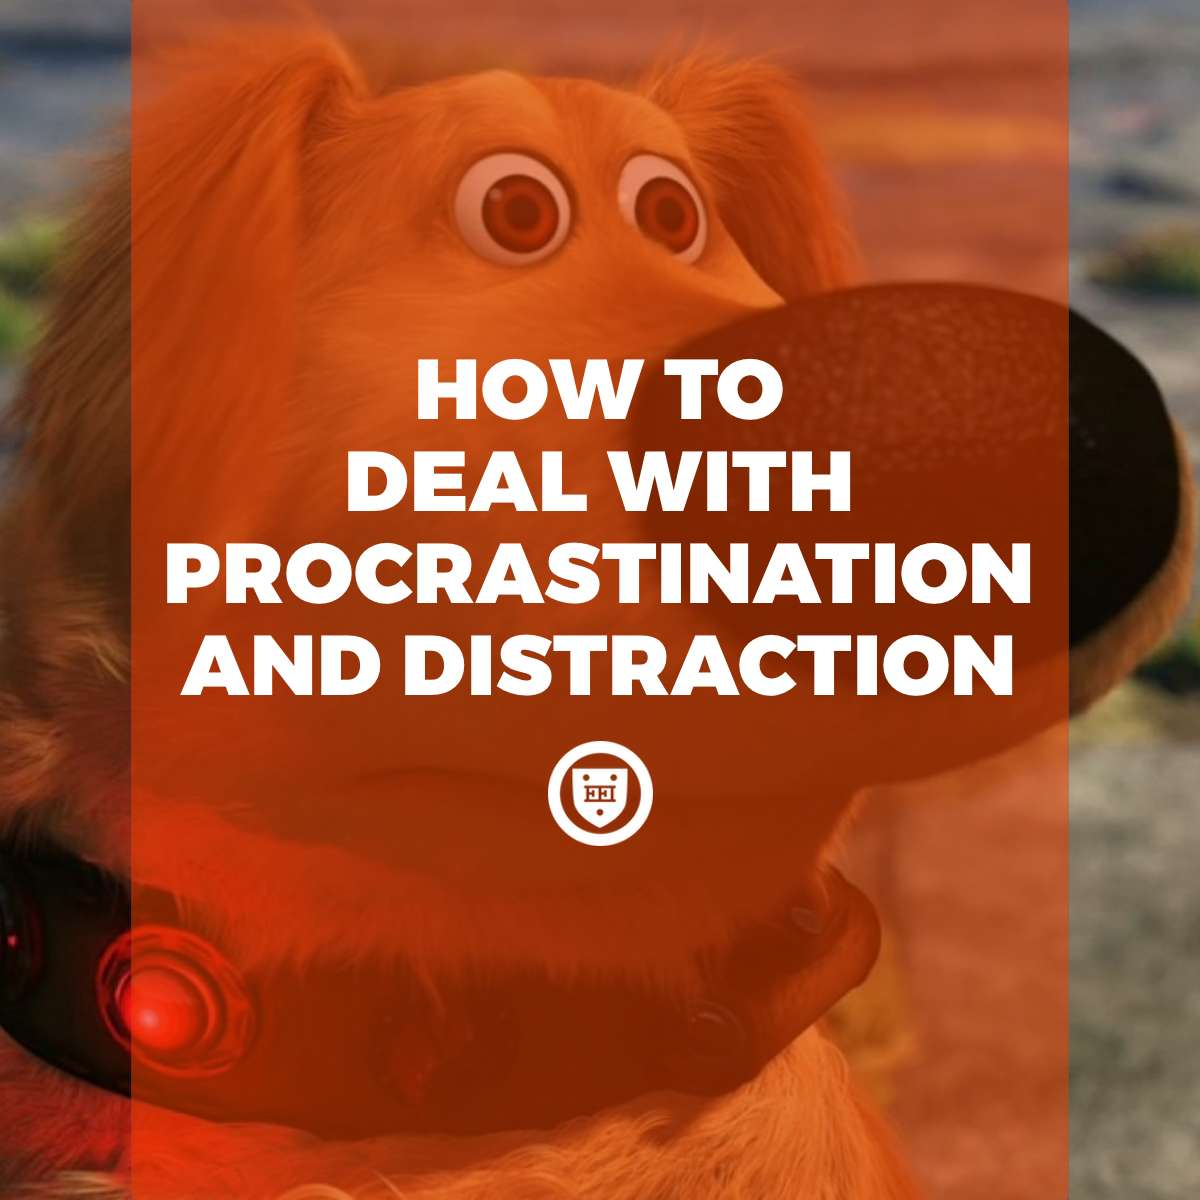 How to Deal with Procrastination and Distraction